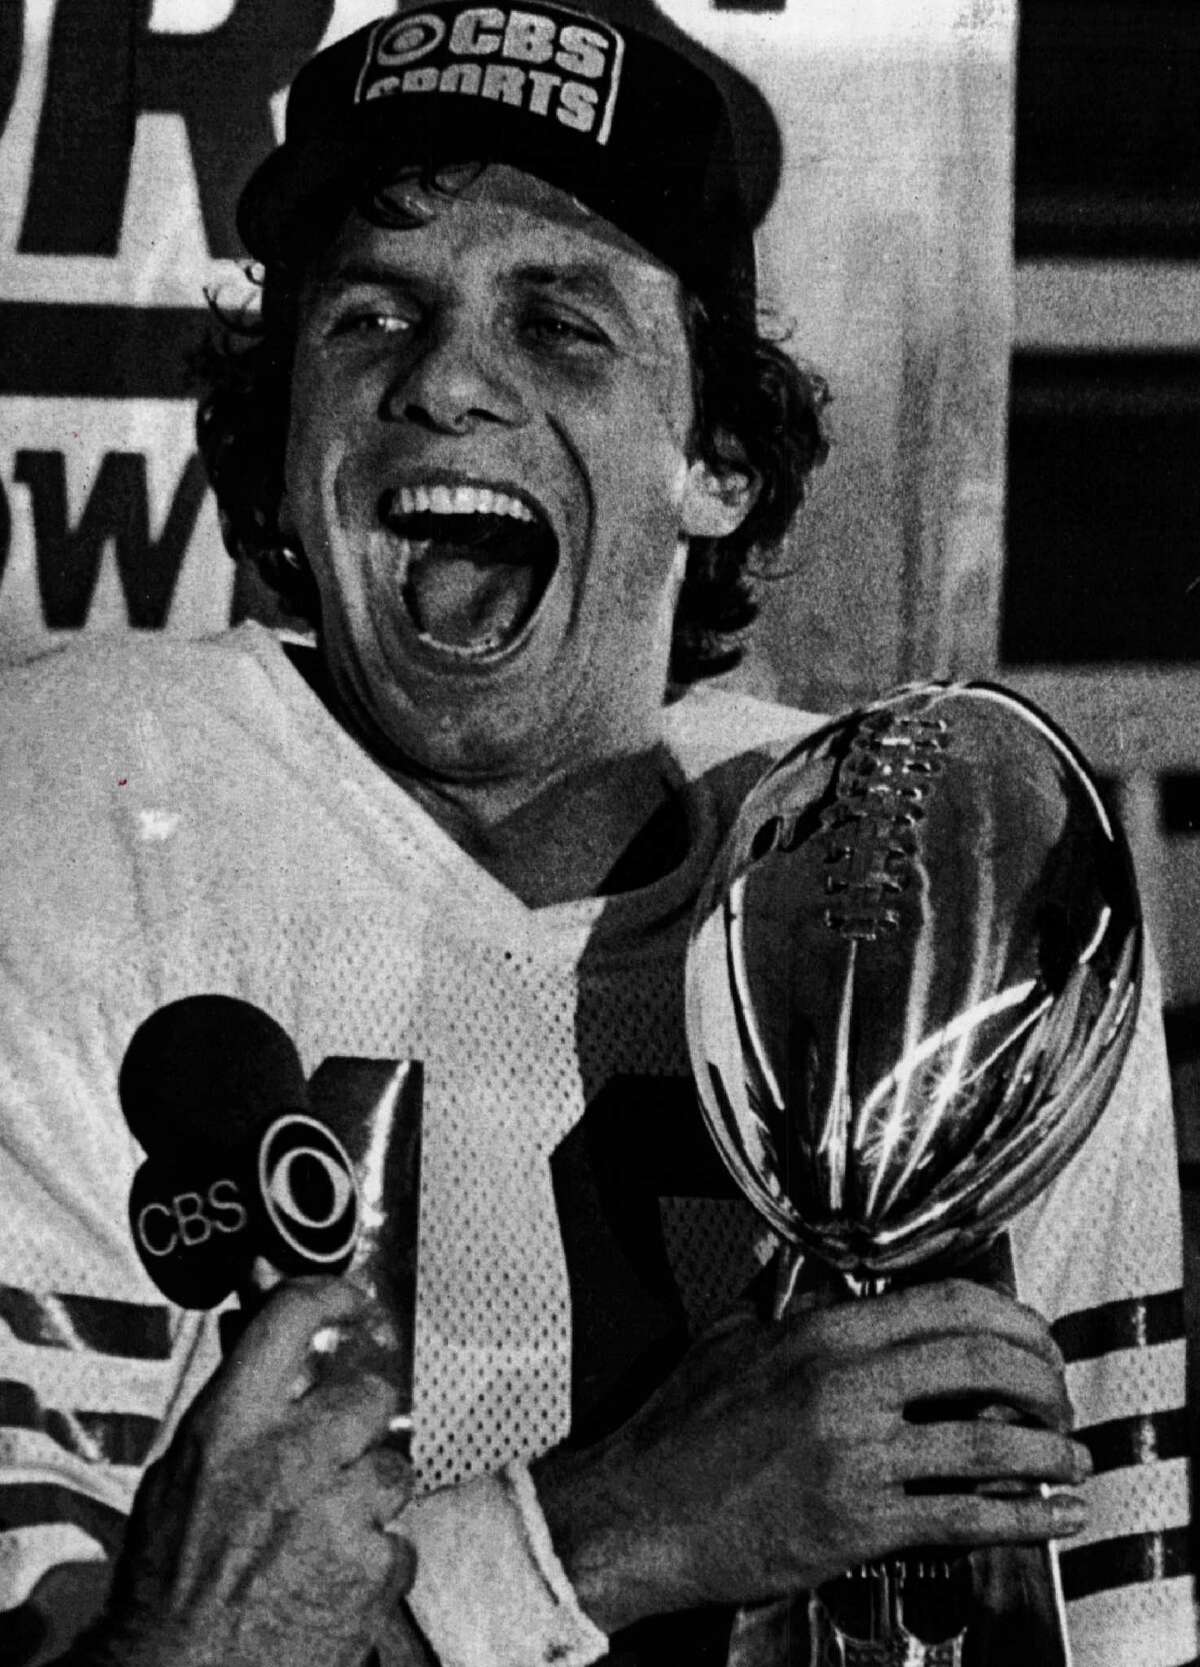 USA - CIRCA 1980s: Joe Montana of the San Francisco 49ers holds the Superbowl trophy circa 1980s. (Photo by Sporting News via Getty Images)